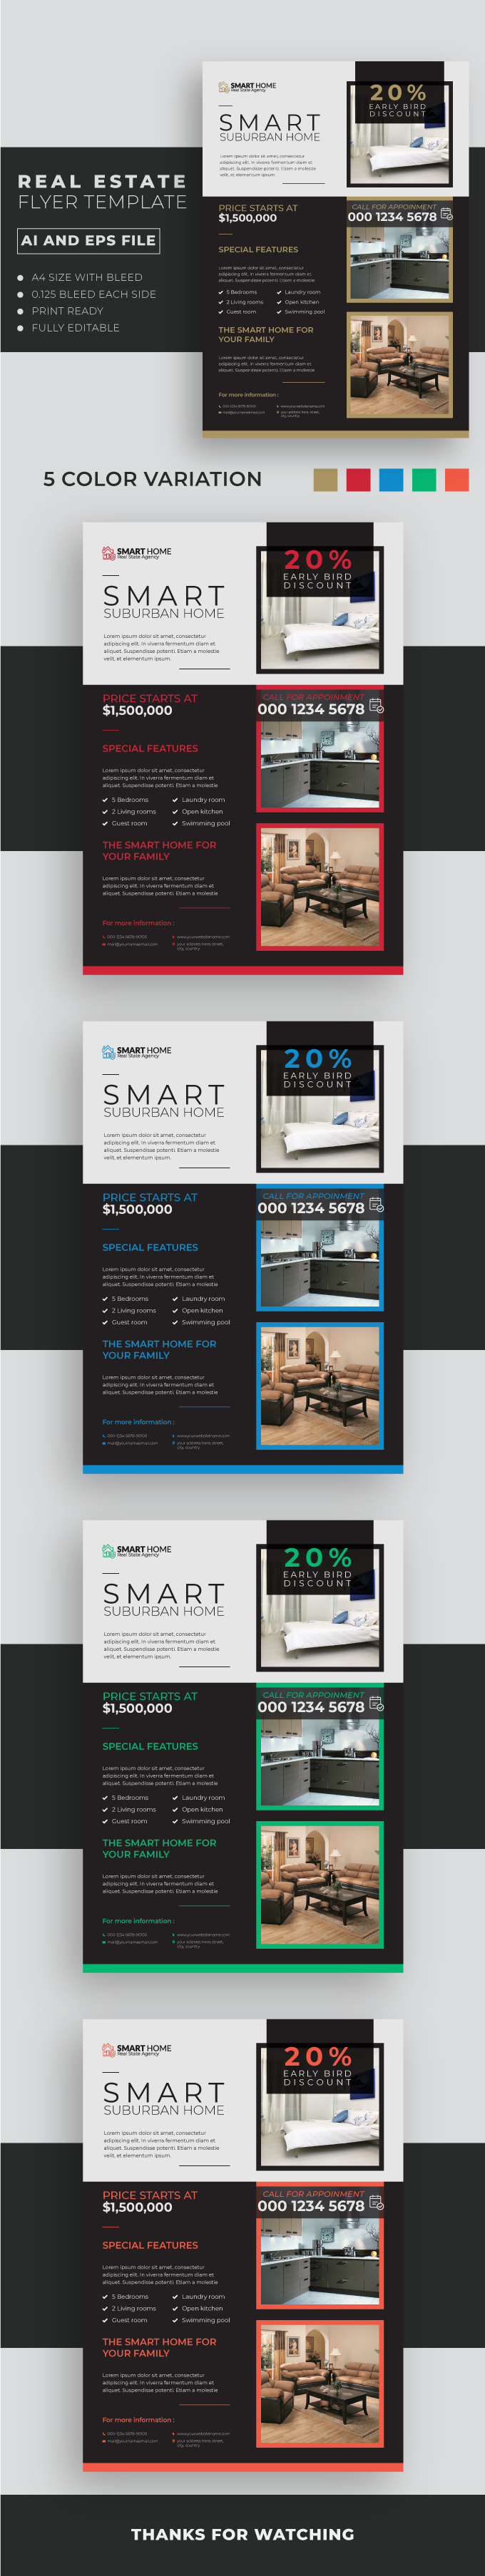 Real Estate Flyer Template 6